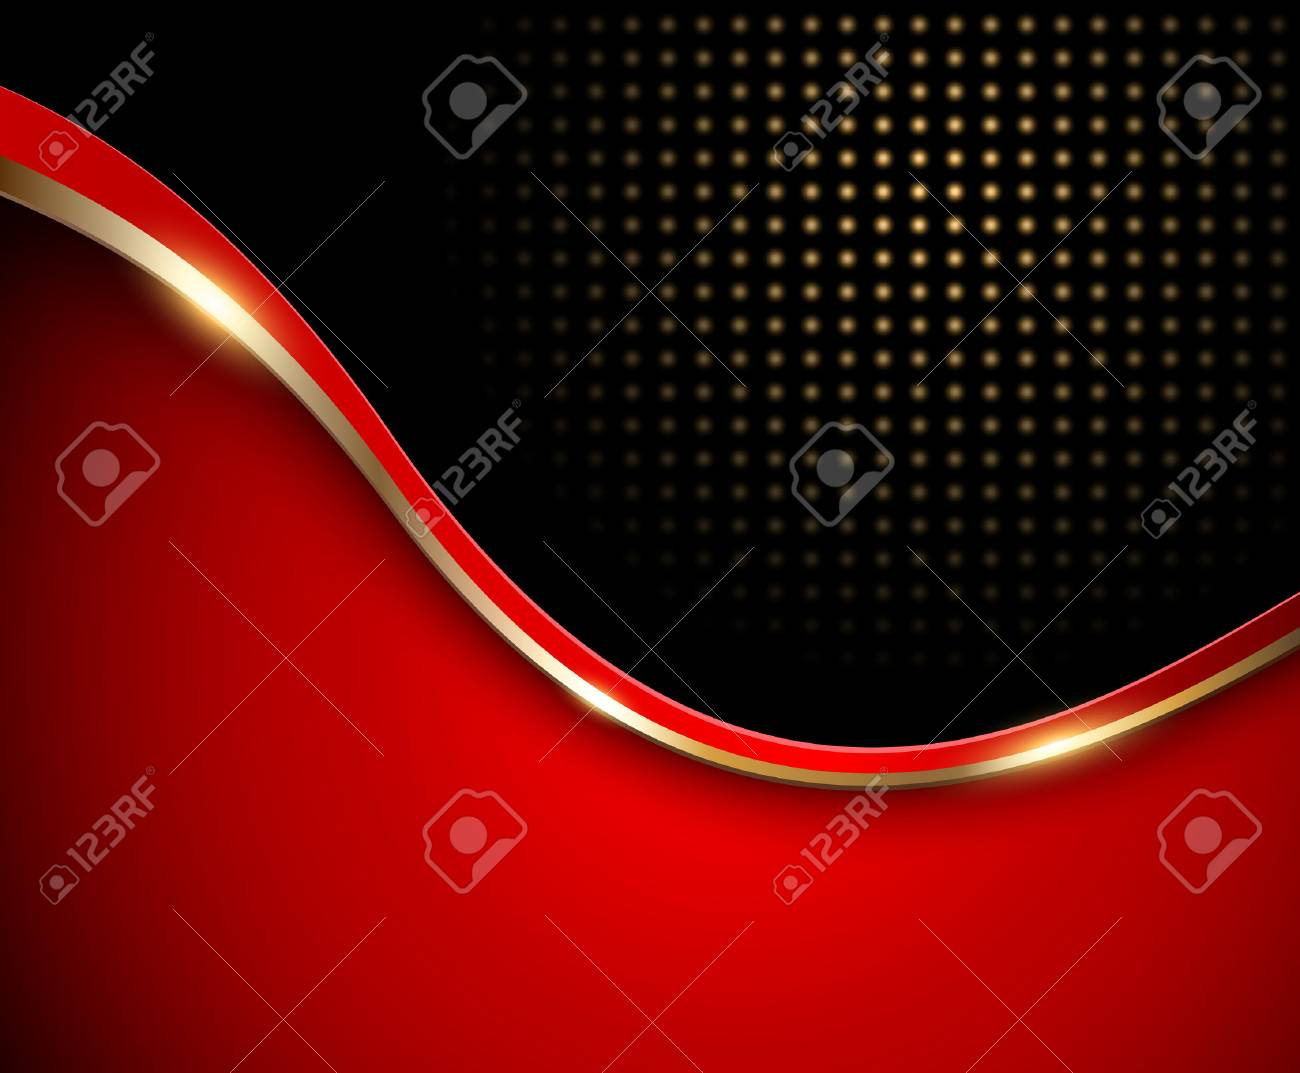 Abstract background red with gold wave and dotted pattern, vector - 45111992